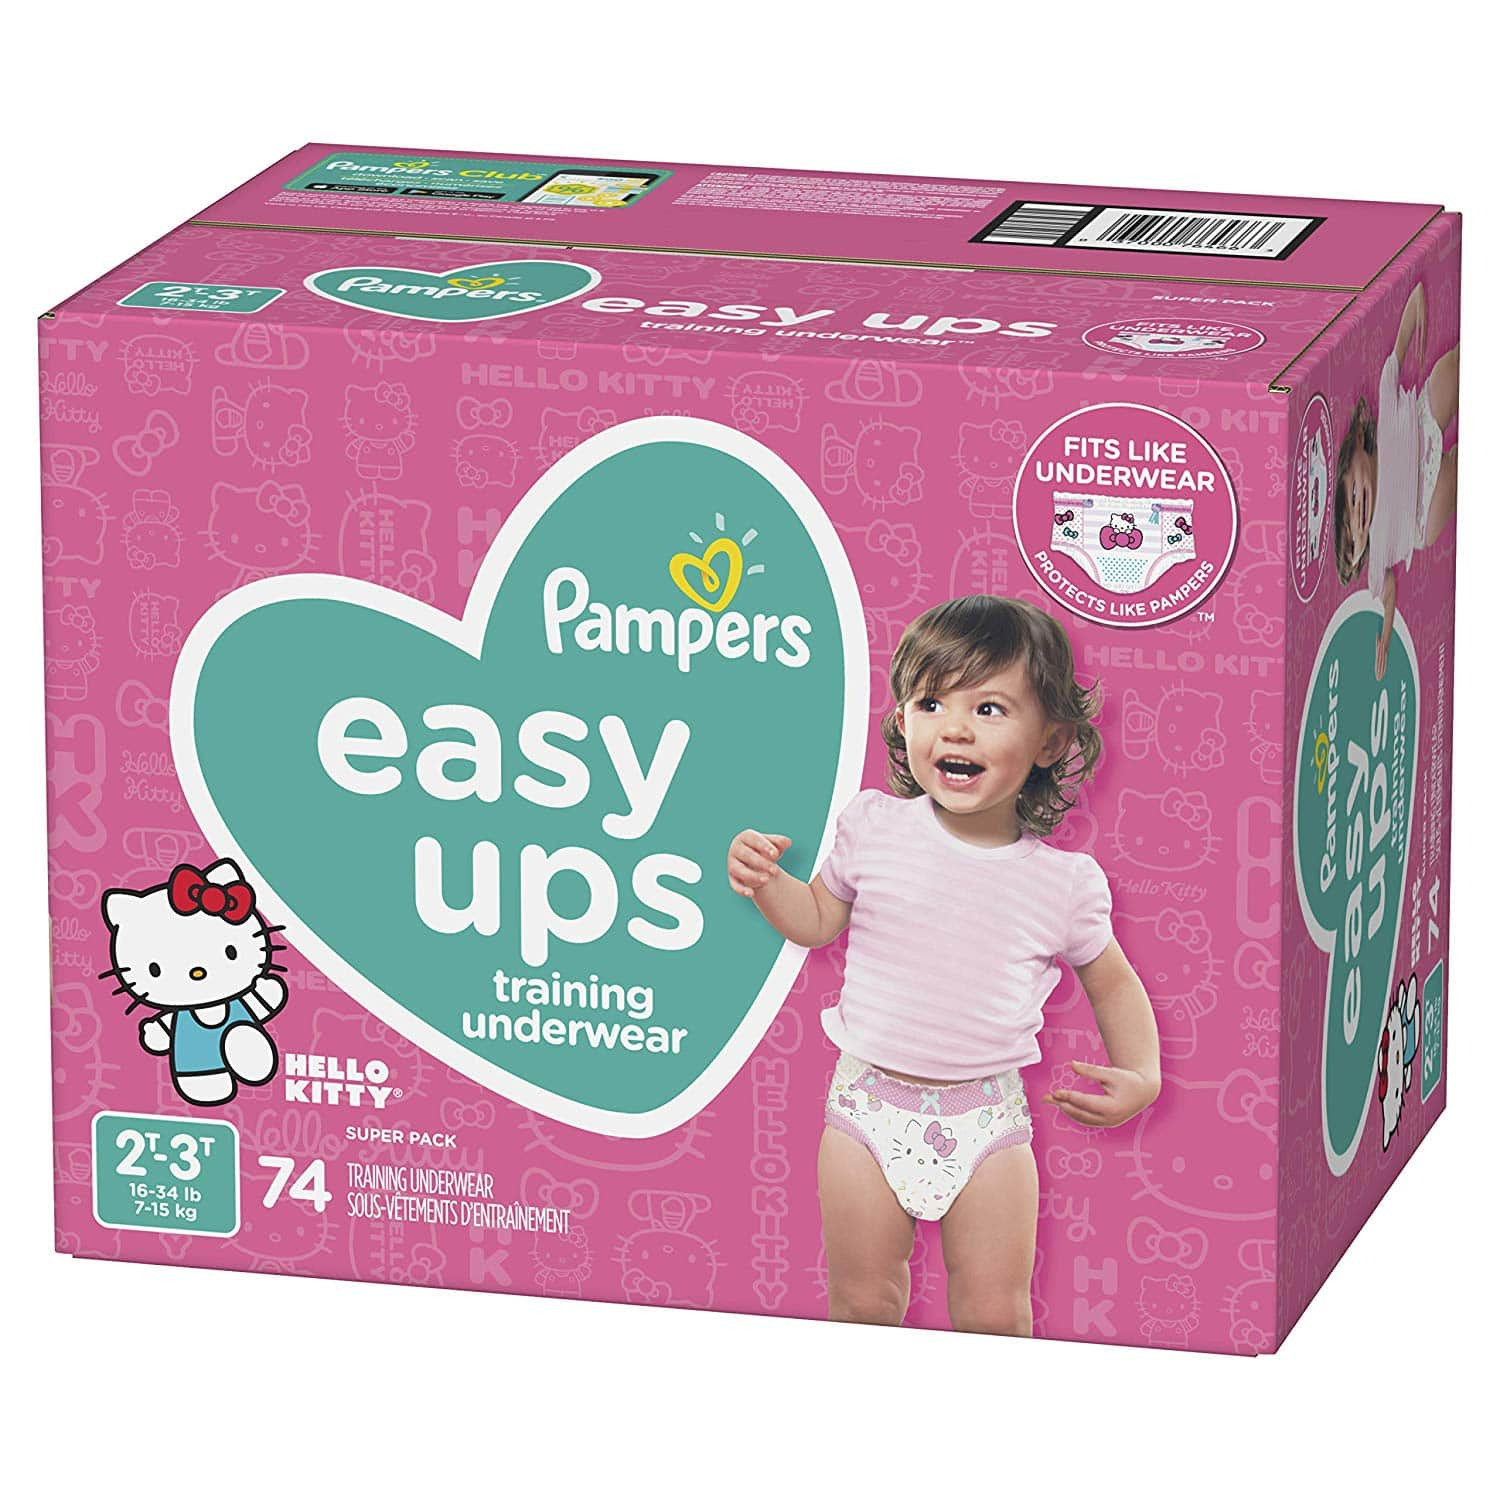 Pampers Easy Ups Pull On Disposable Potty Training Underwear